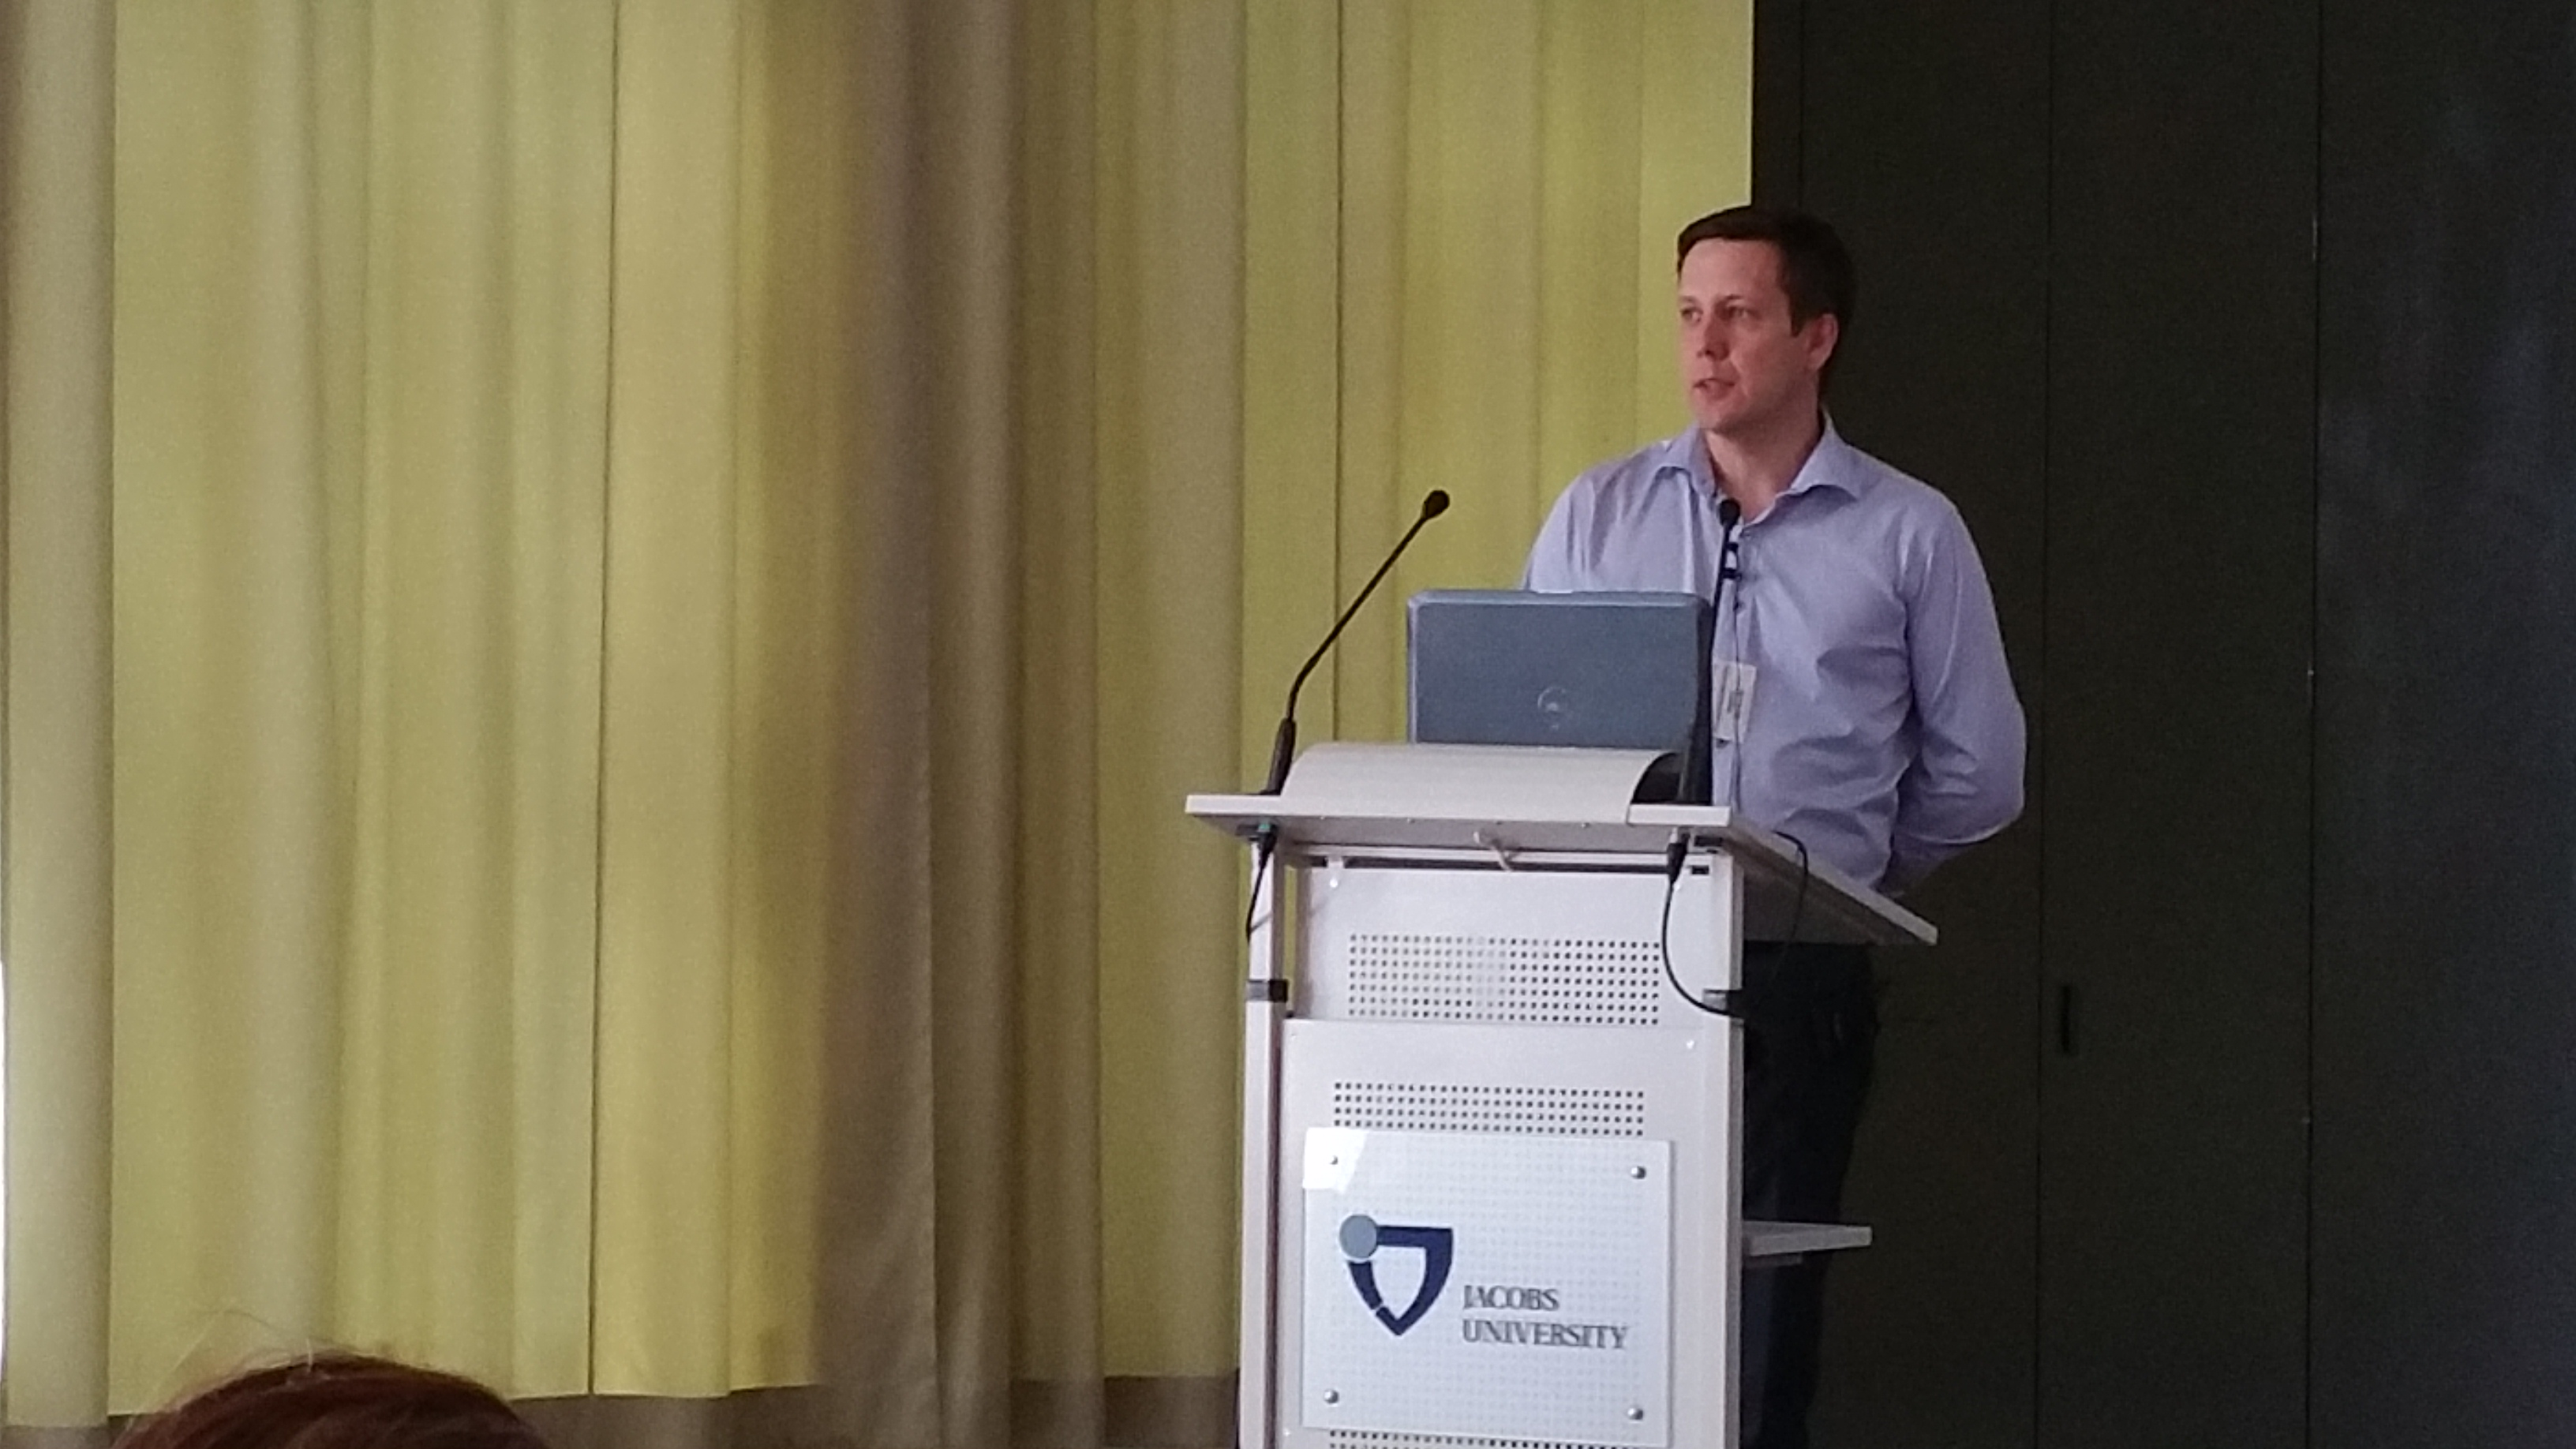 Magnus Strandh (Adenium Biotech, Copenhagen, Denmark) - Clinical development of antimicrobial peptides -opportunities and challenges from a SME perspective